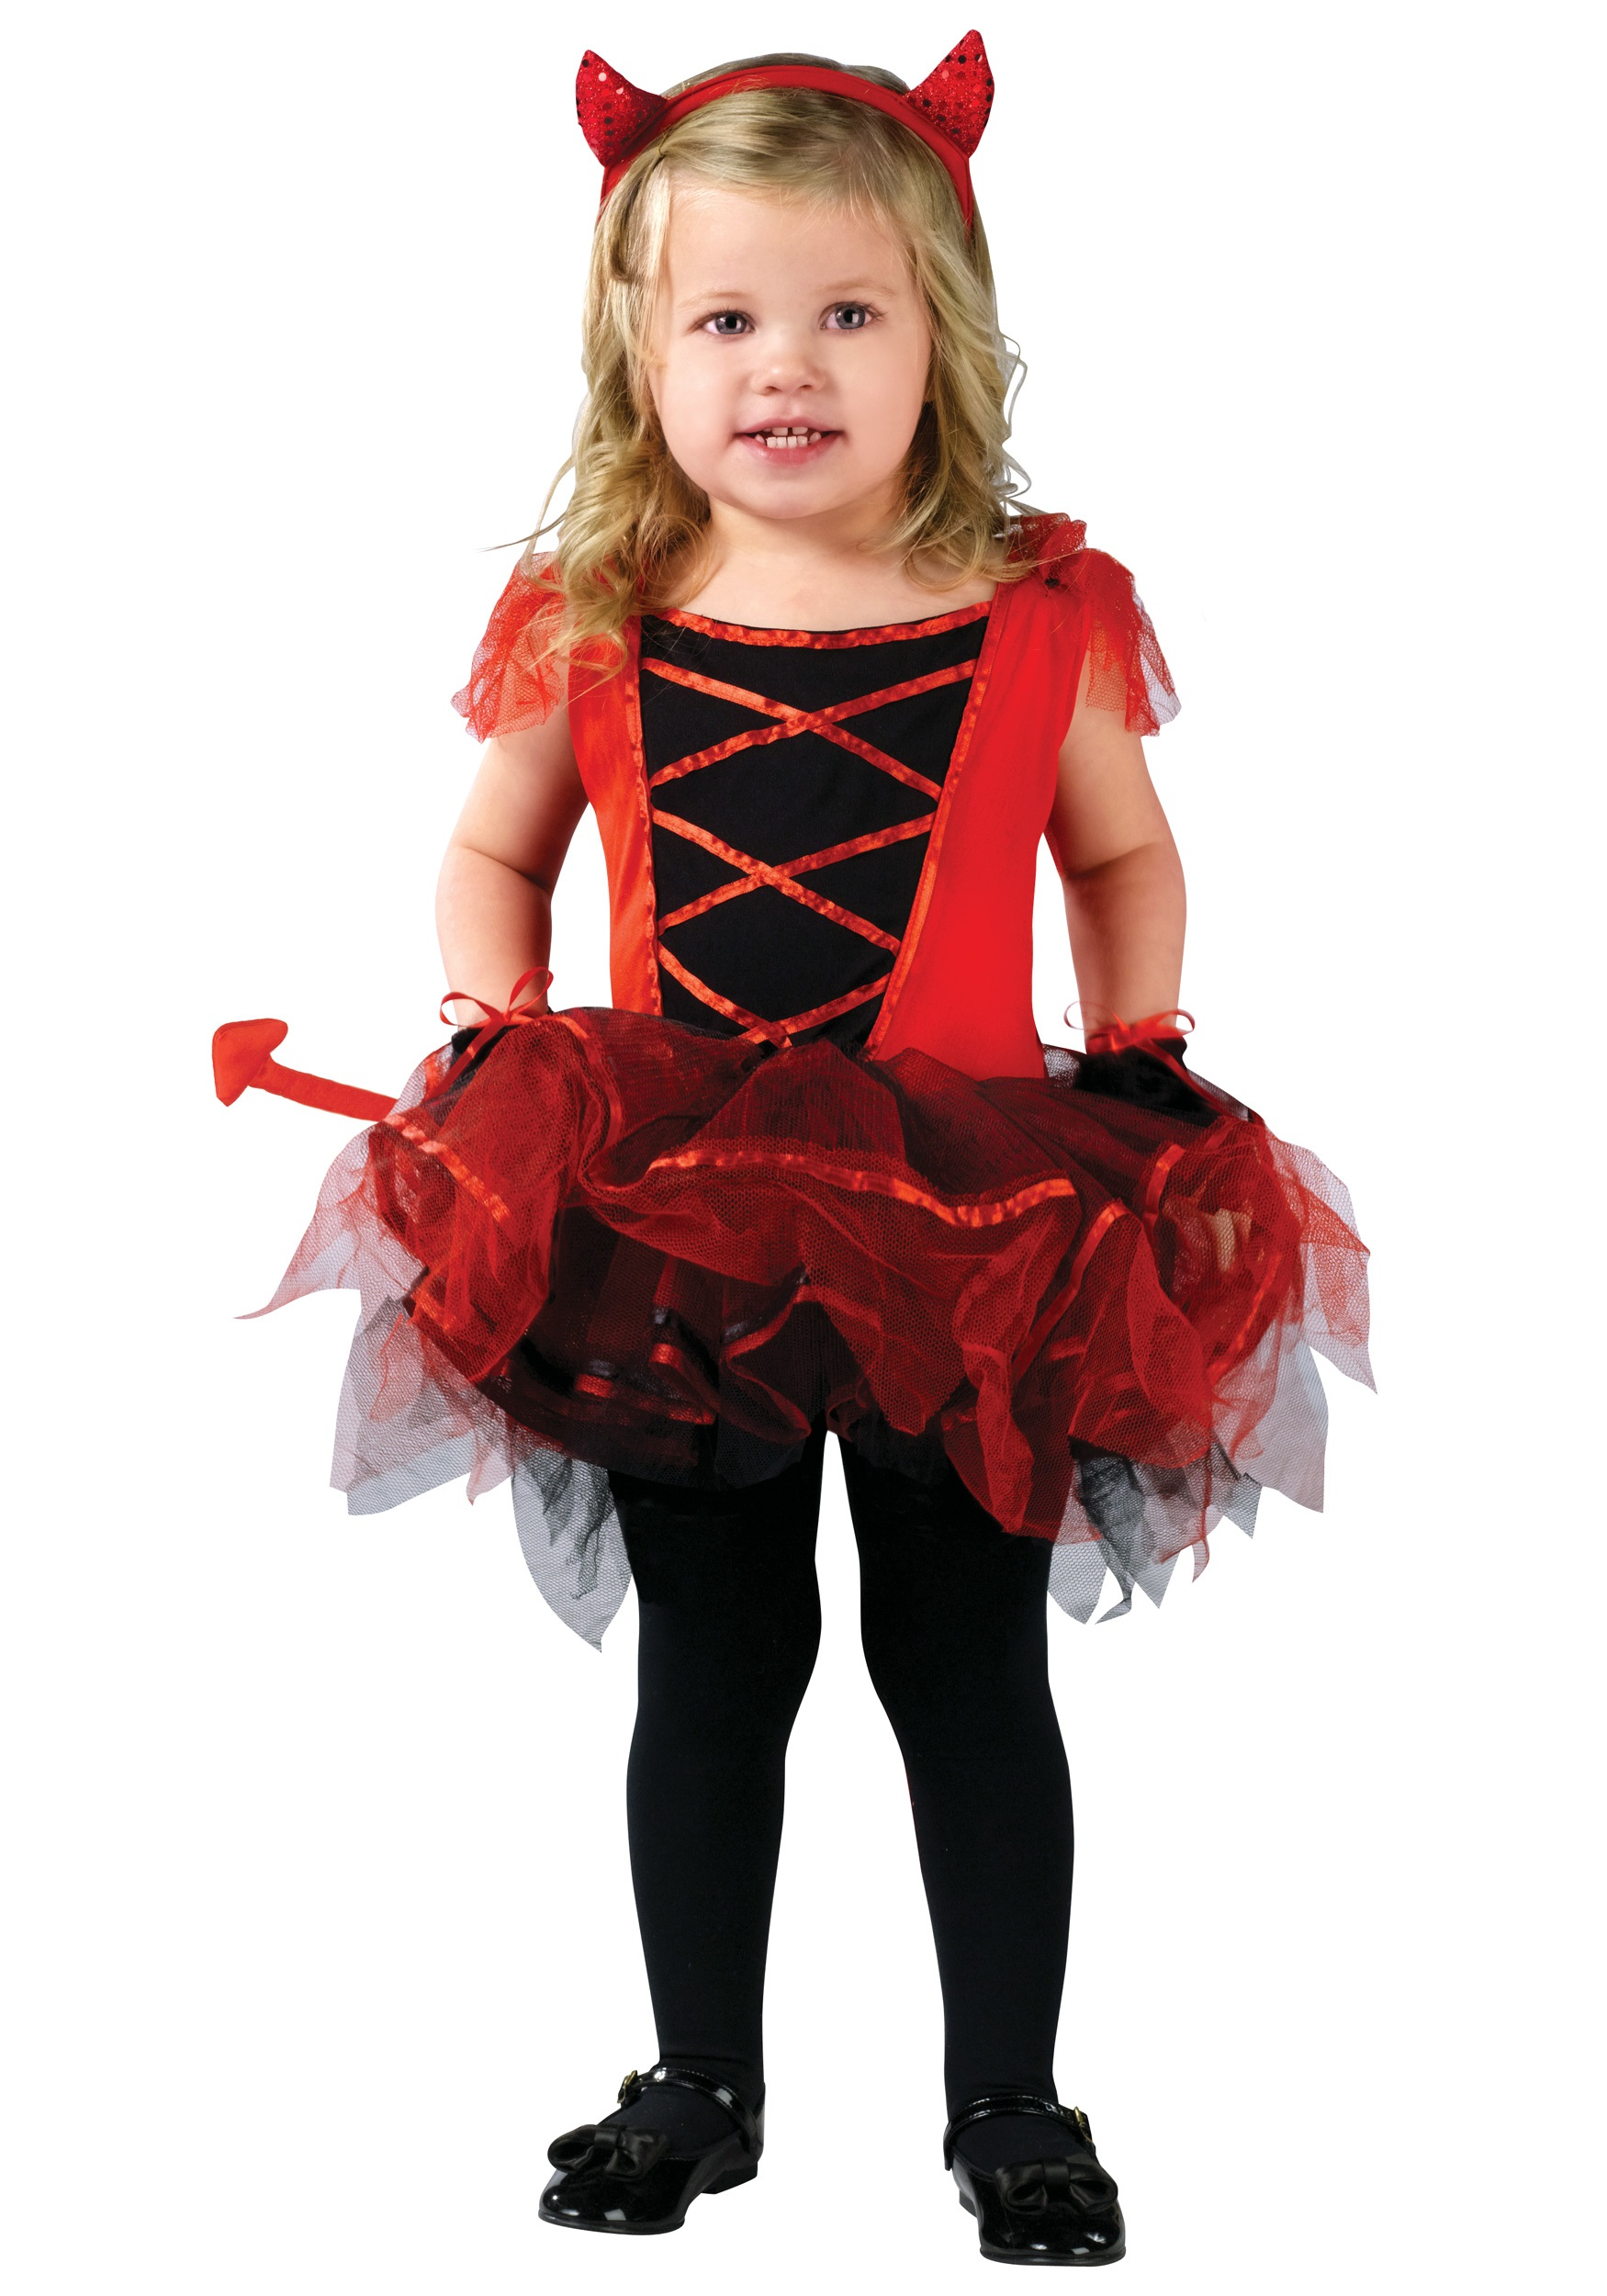 lil girl halloween costumes & little girl halloween costumes 2014